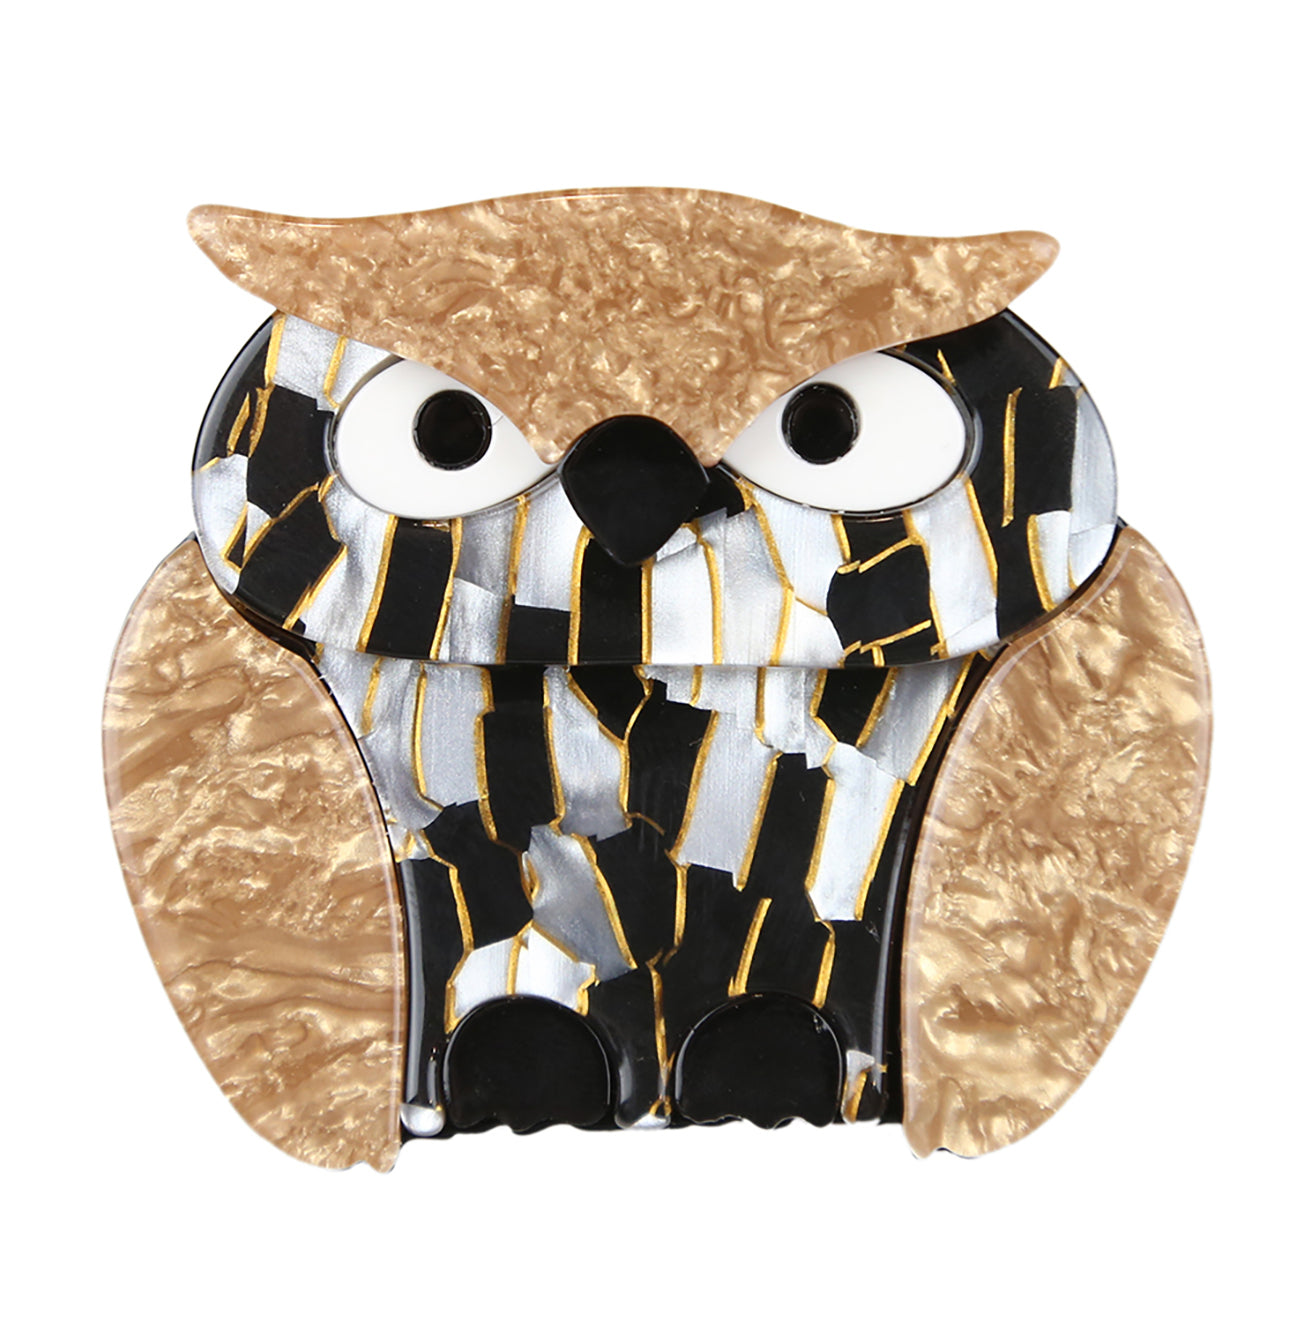 Heidi The Gold Crested Owl Broach